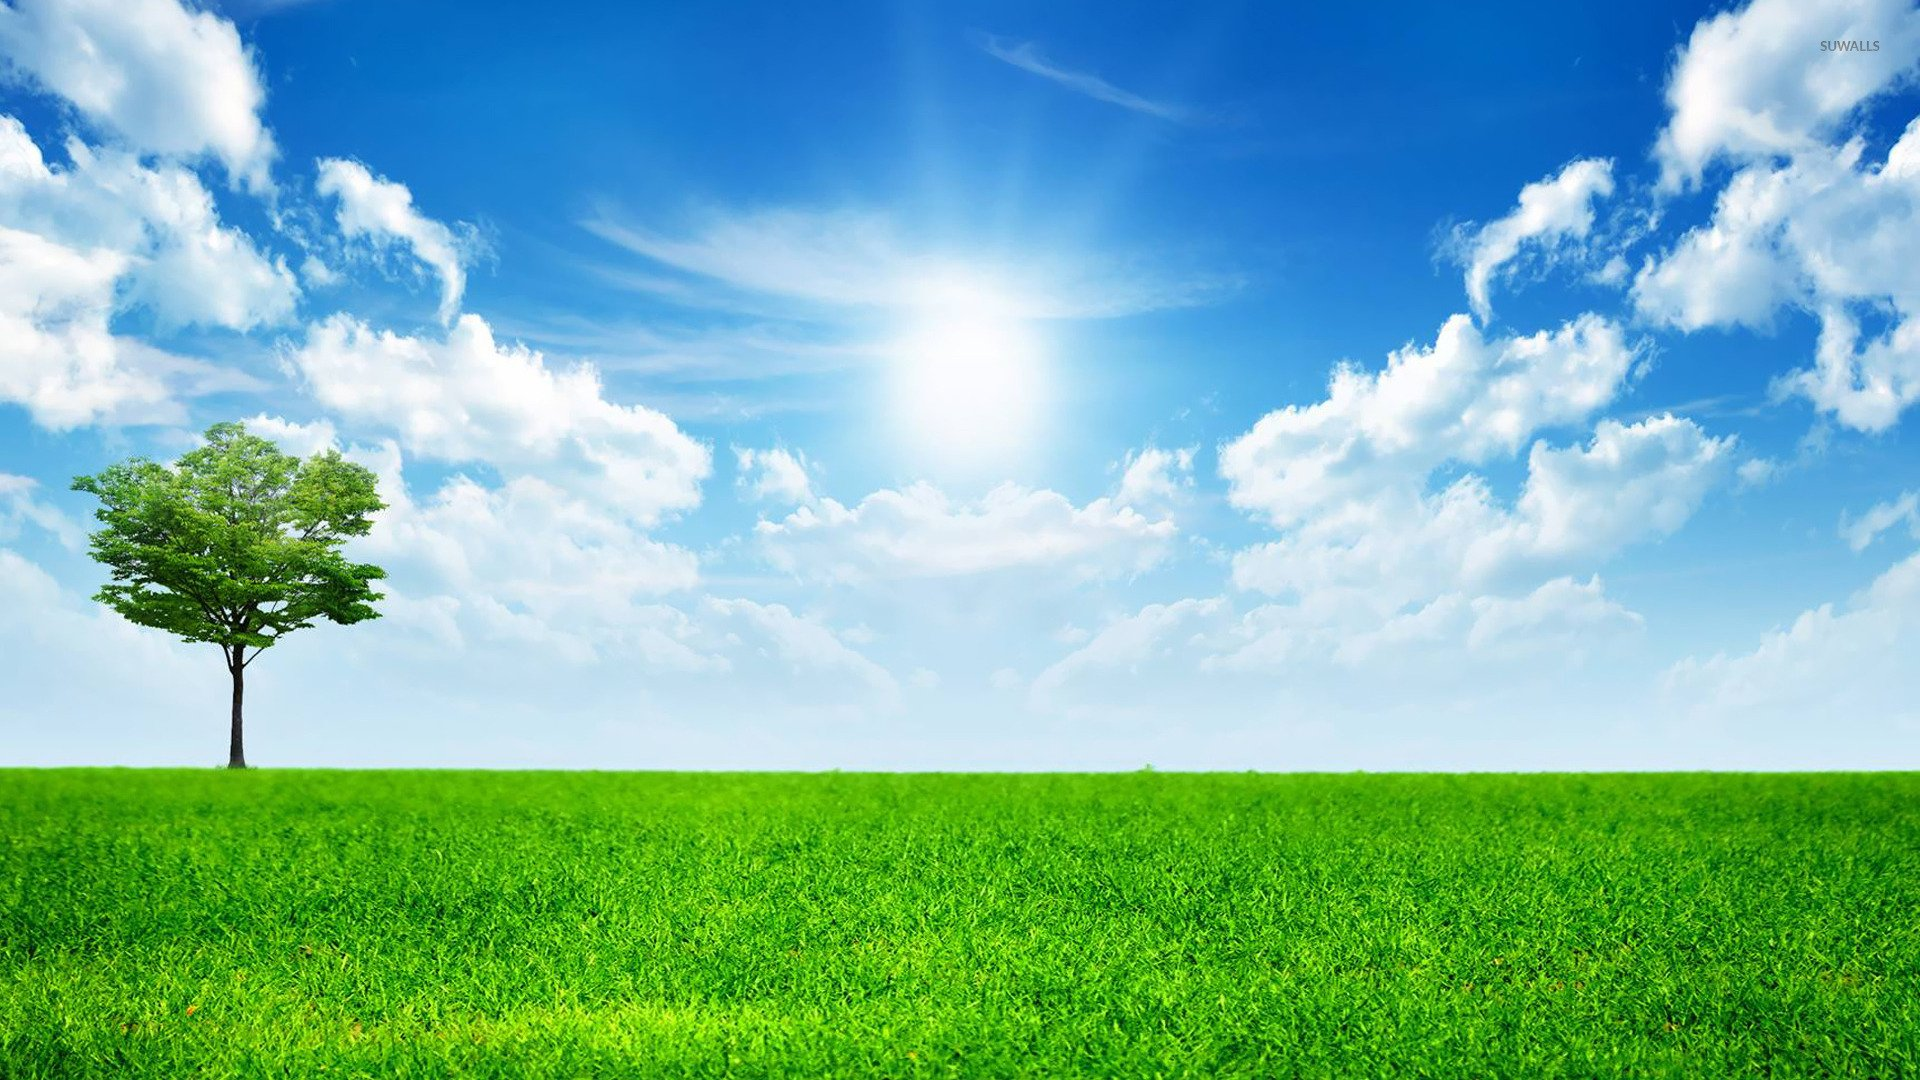 Sunny blue sky wallpaper   Nature wallpapers   14782 1920x1080